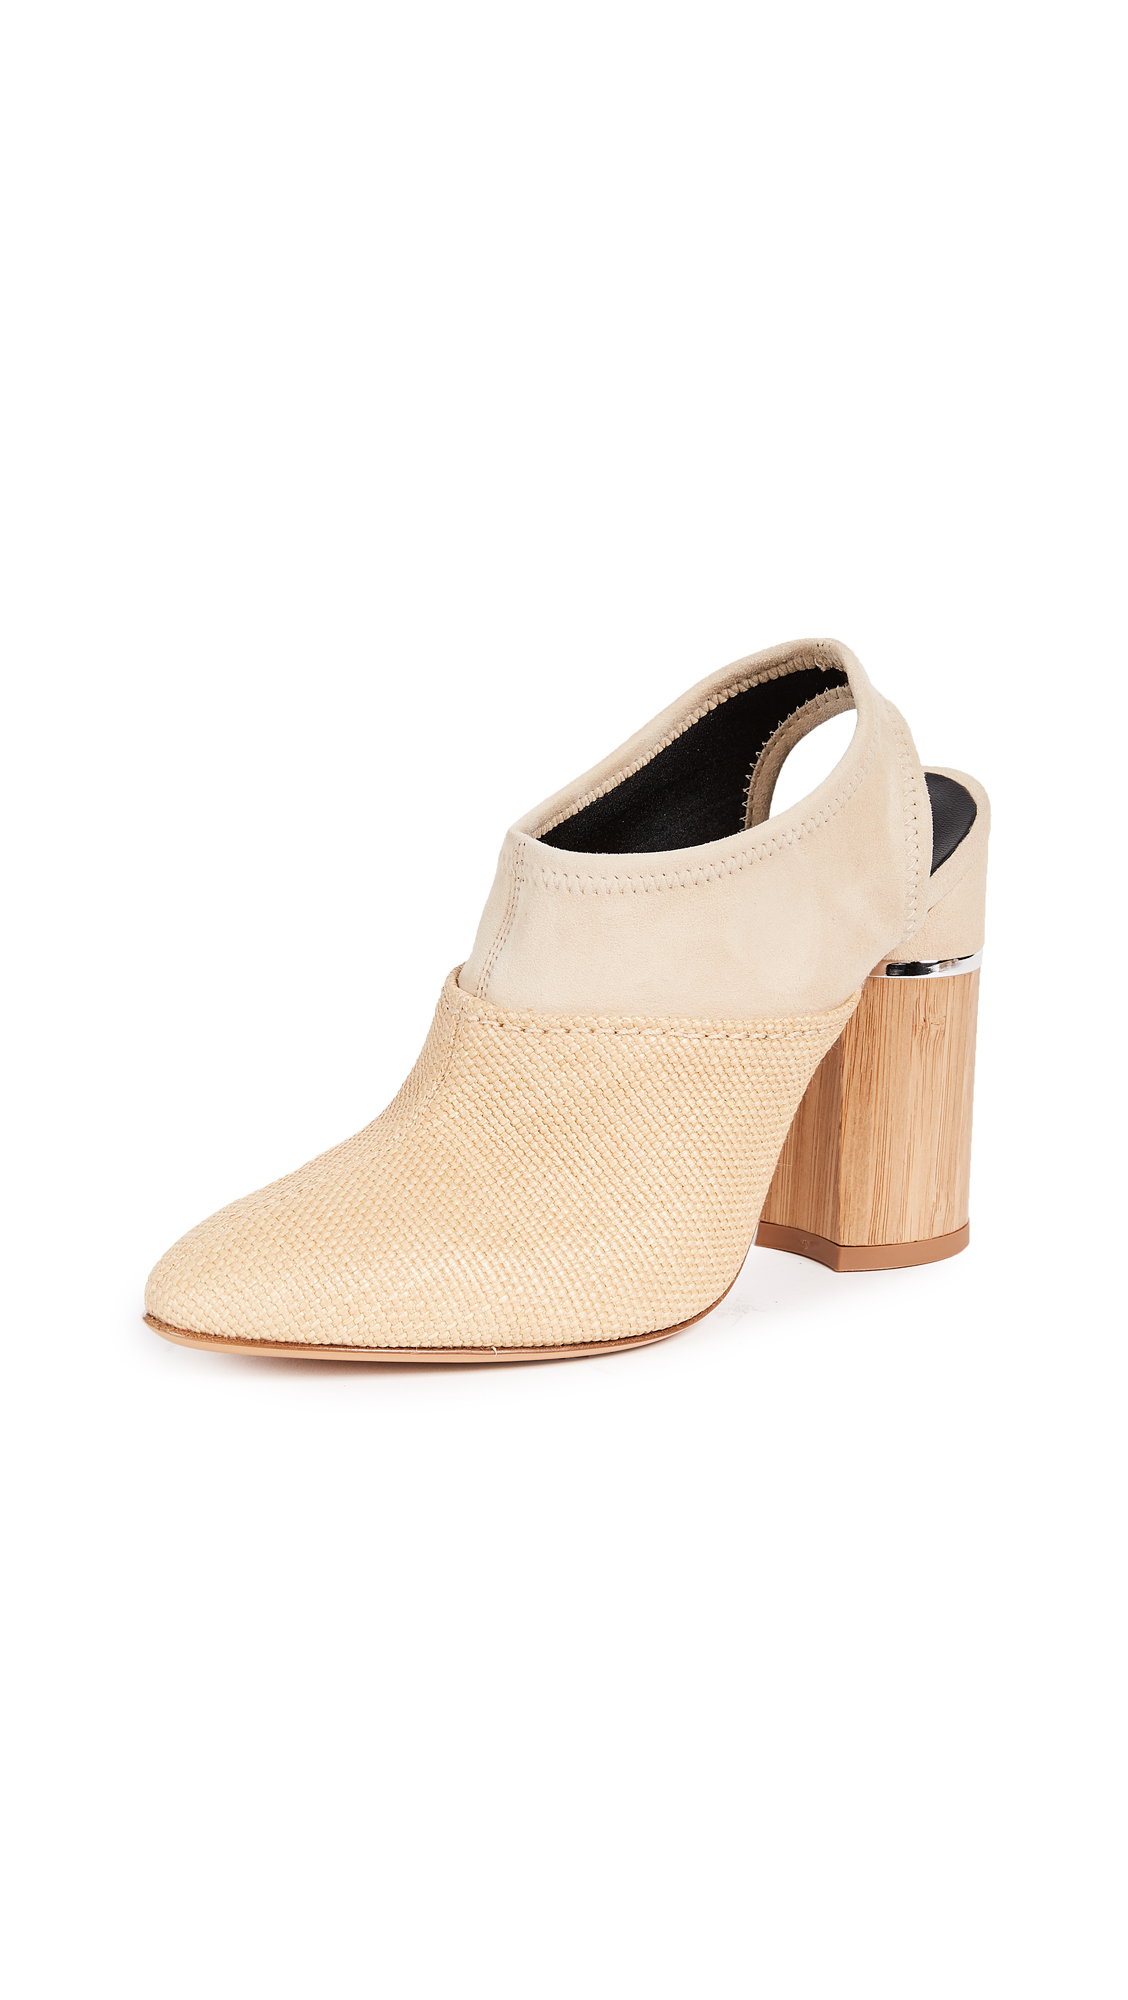 Photo of 3.1 Phillip Lim Drum Slingback Mules - buy 3.1 Phillip Lim shoes